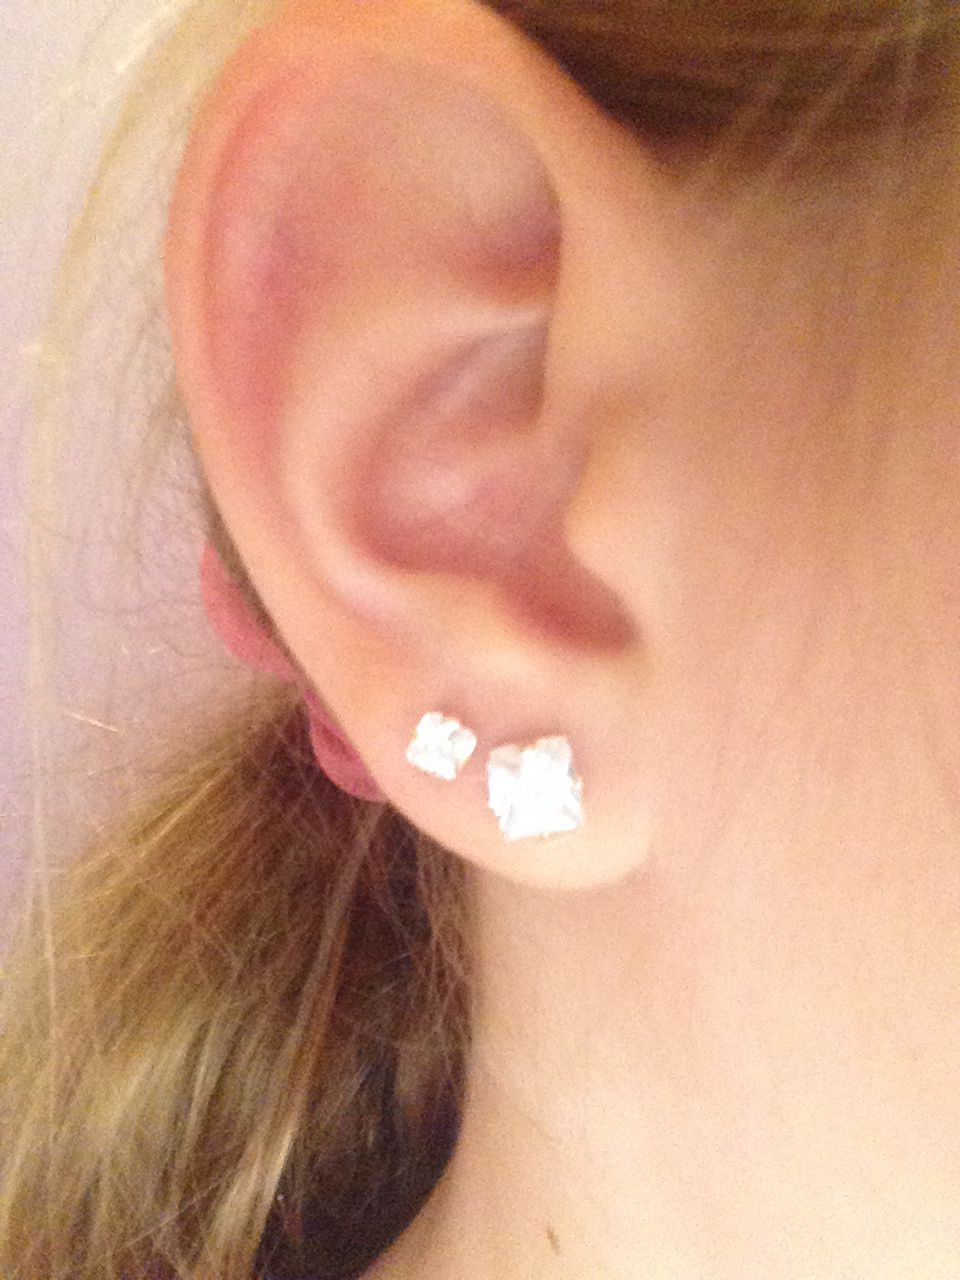 Double nose piercing ideas  Second percing  Percing  Pinterest  Piercing and Piercings